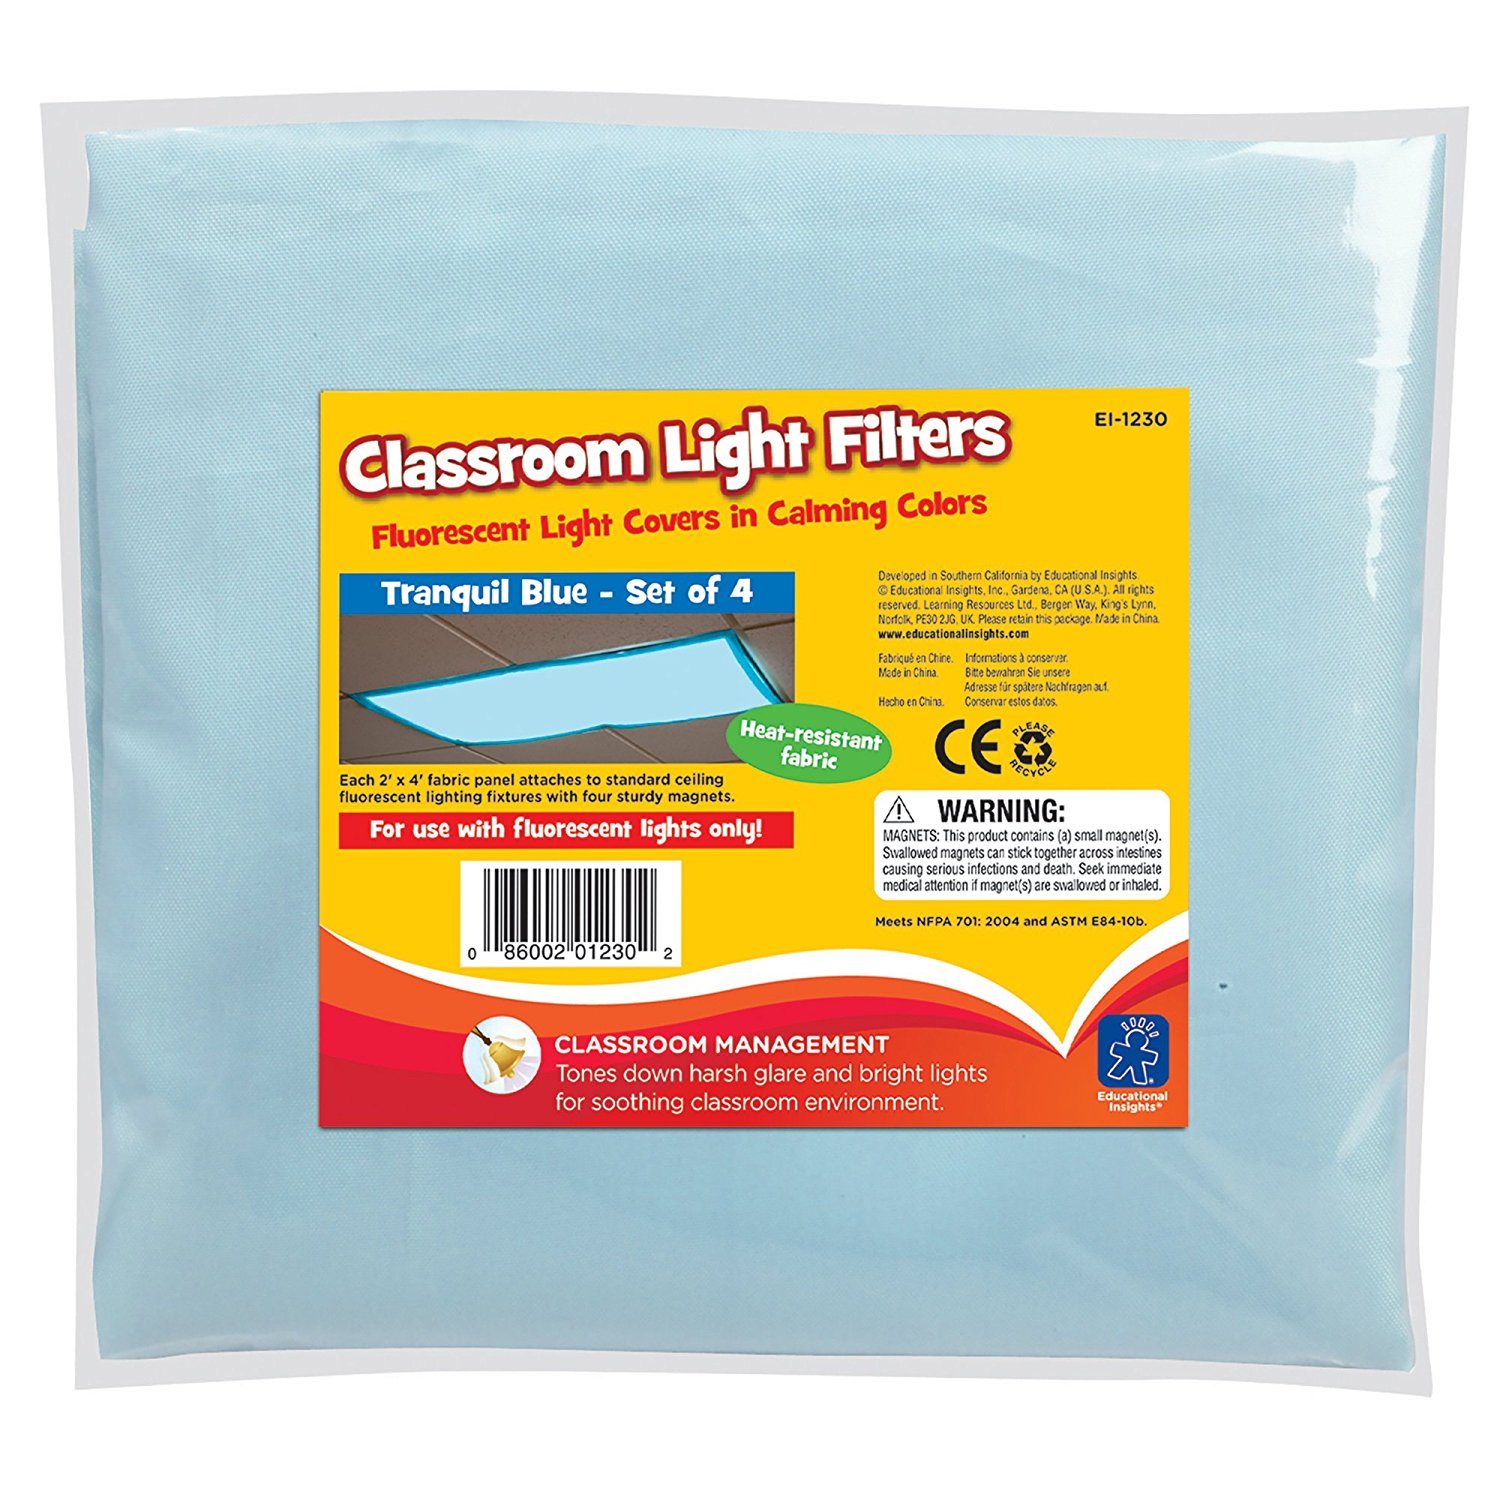 Fluorescent Light Filters (Tranquil Blue), Set of 4, CREATE A CALM AND  PLEASANT ENVIRONMENT: Create a calm and soothing classroom or office ...